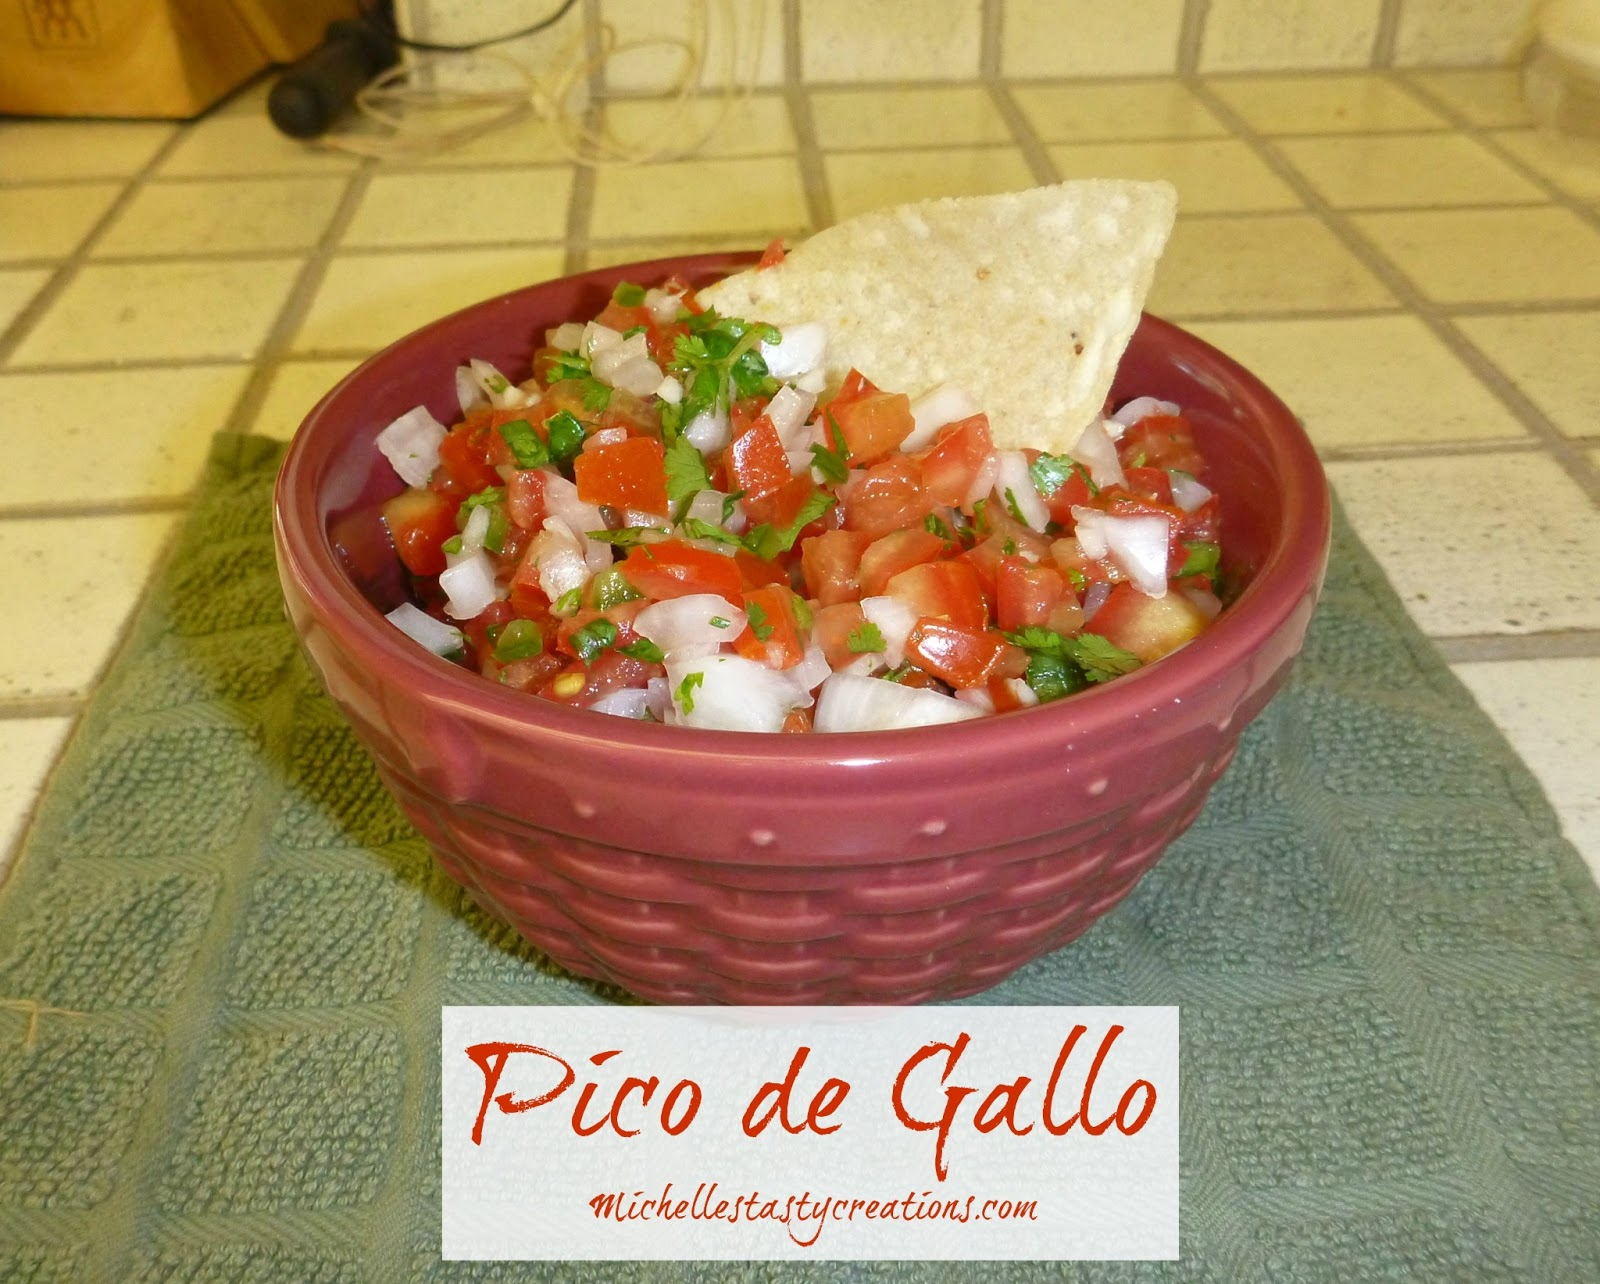 Every time I make Mexican food my son asks for Pico de Gallo.